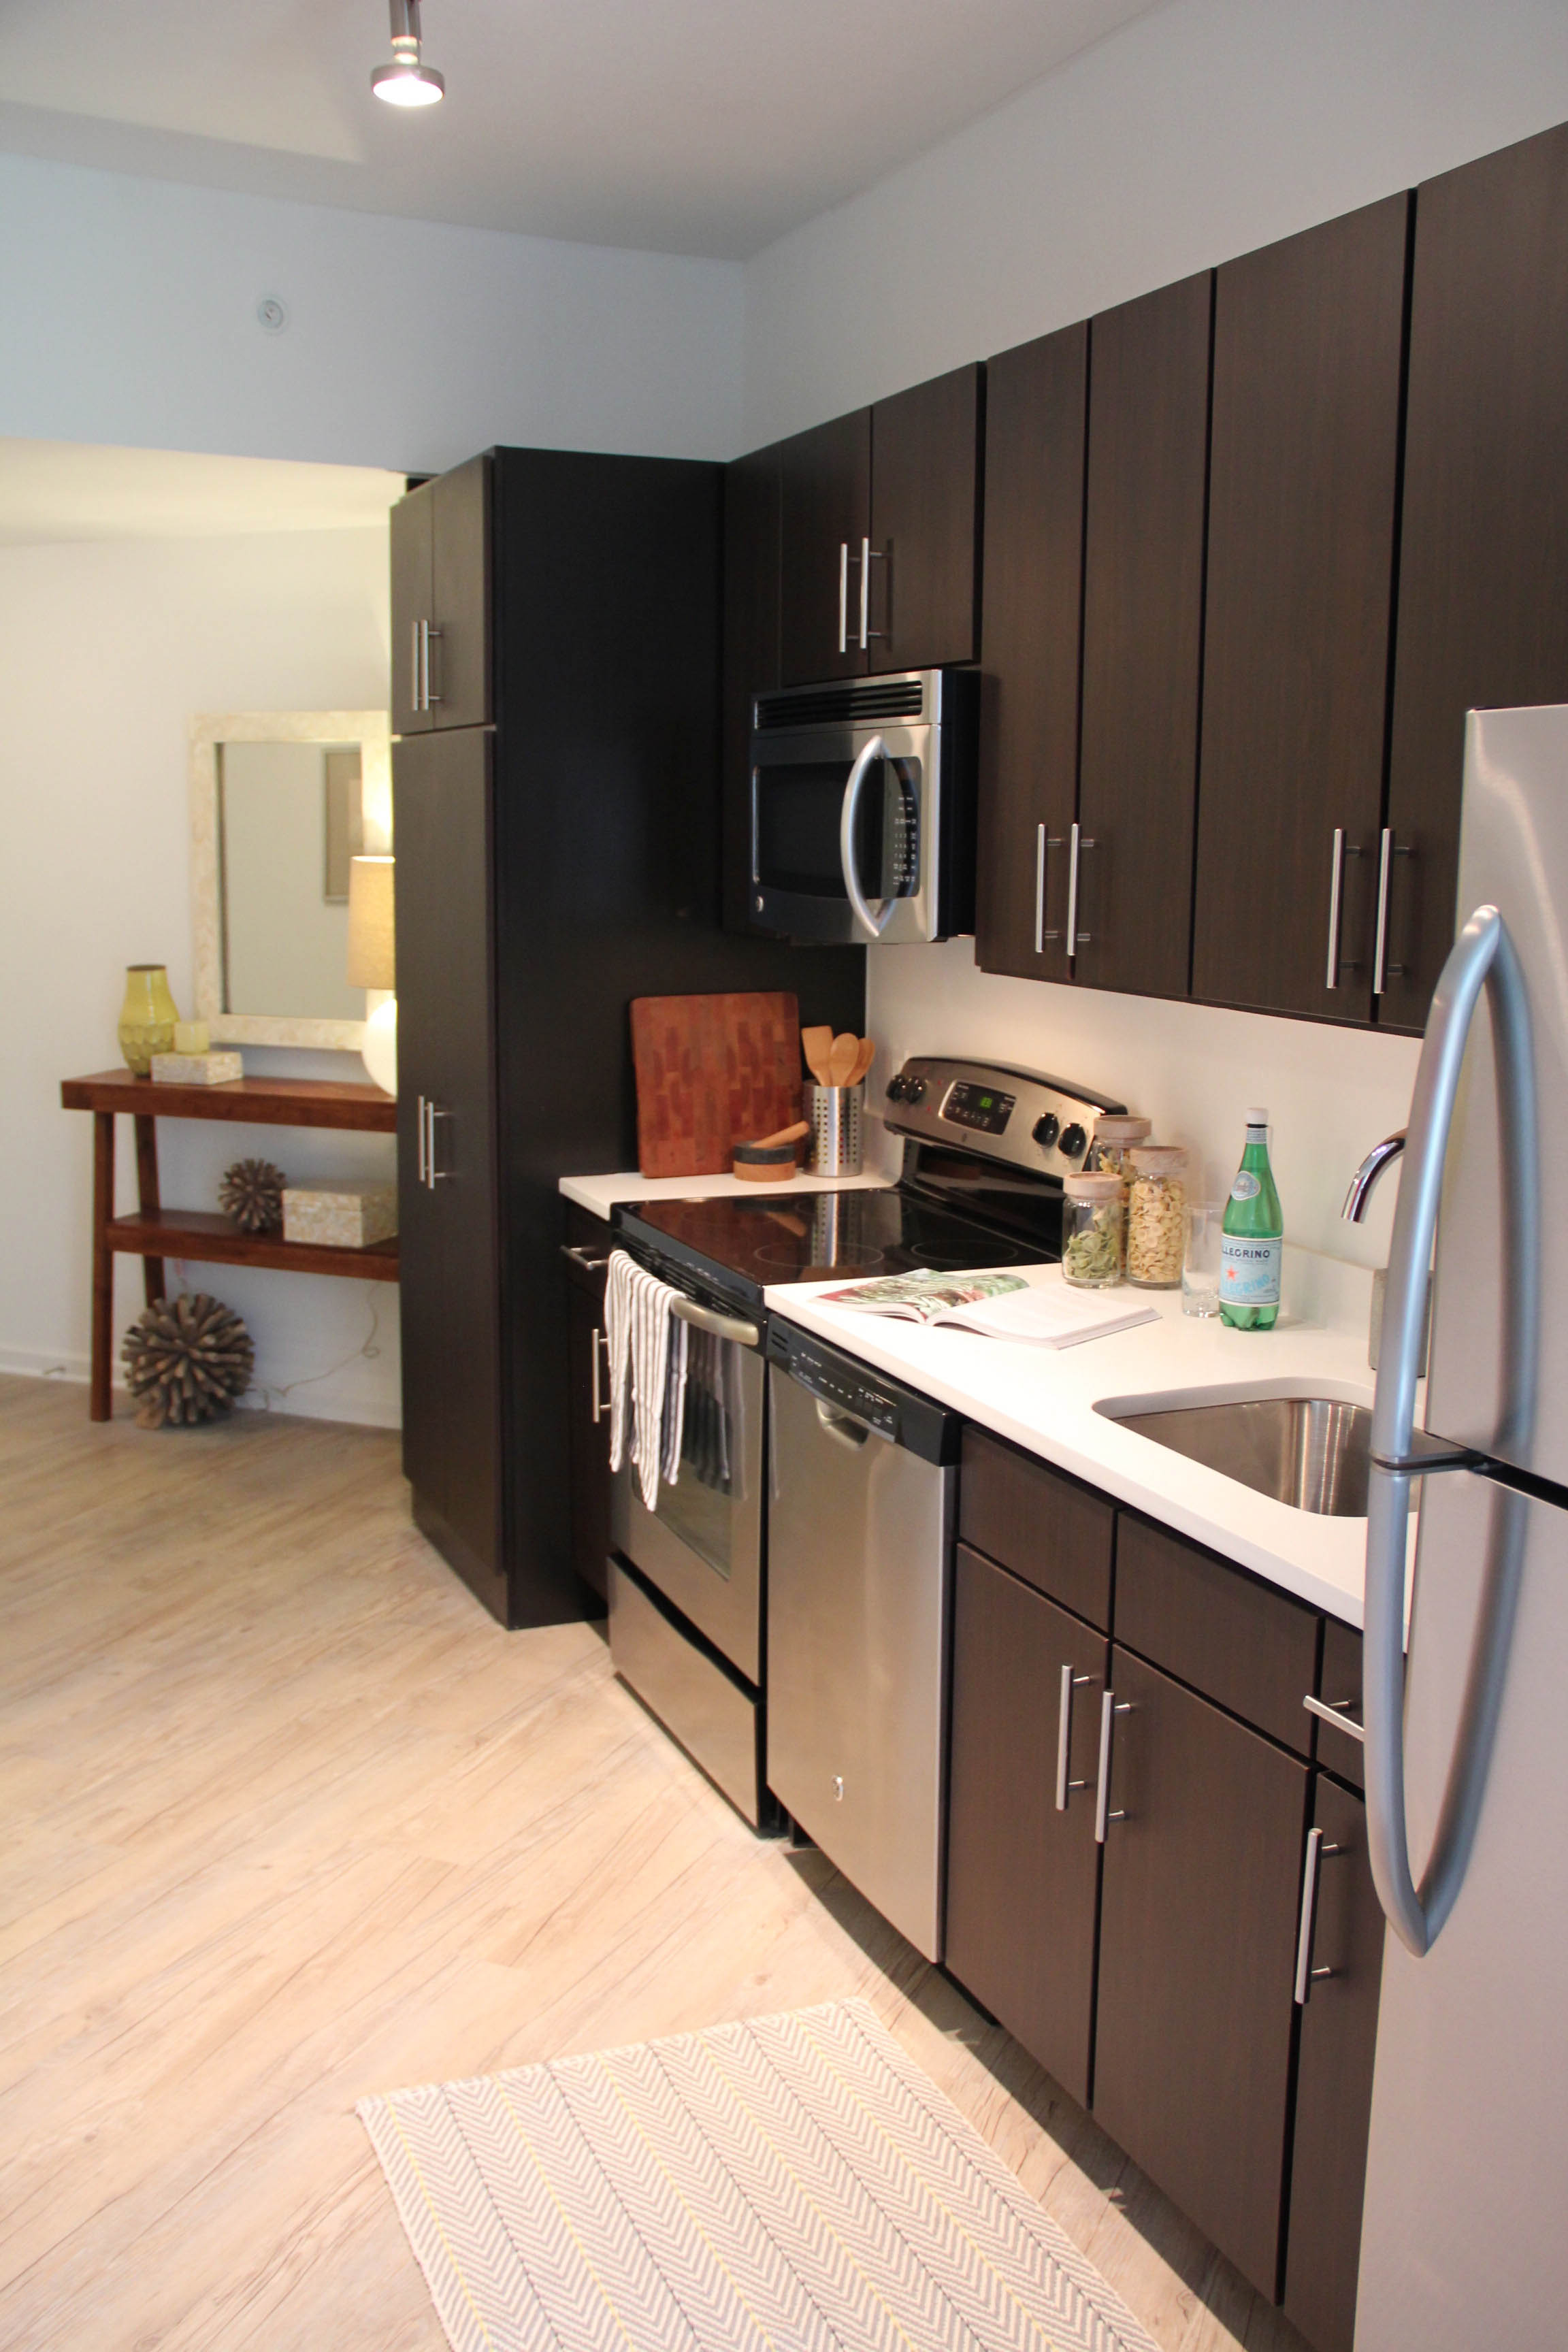 14w apartments open in u street neighborhood with designer for New model kitchen design